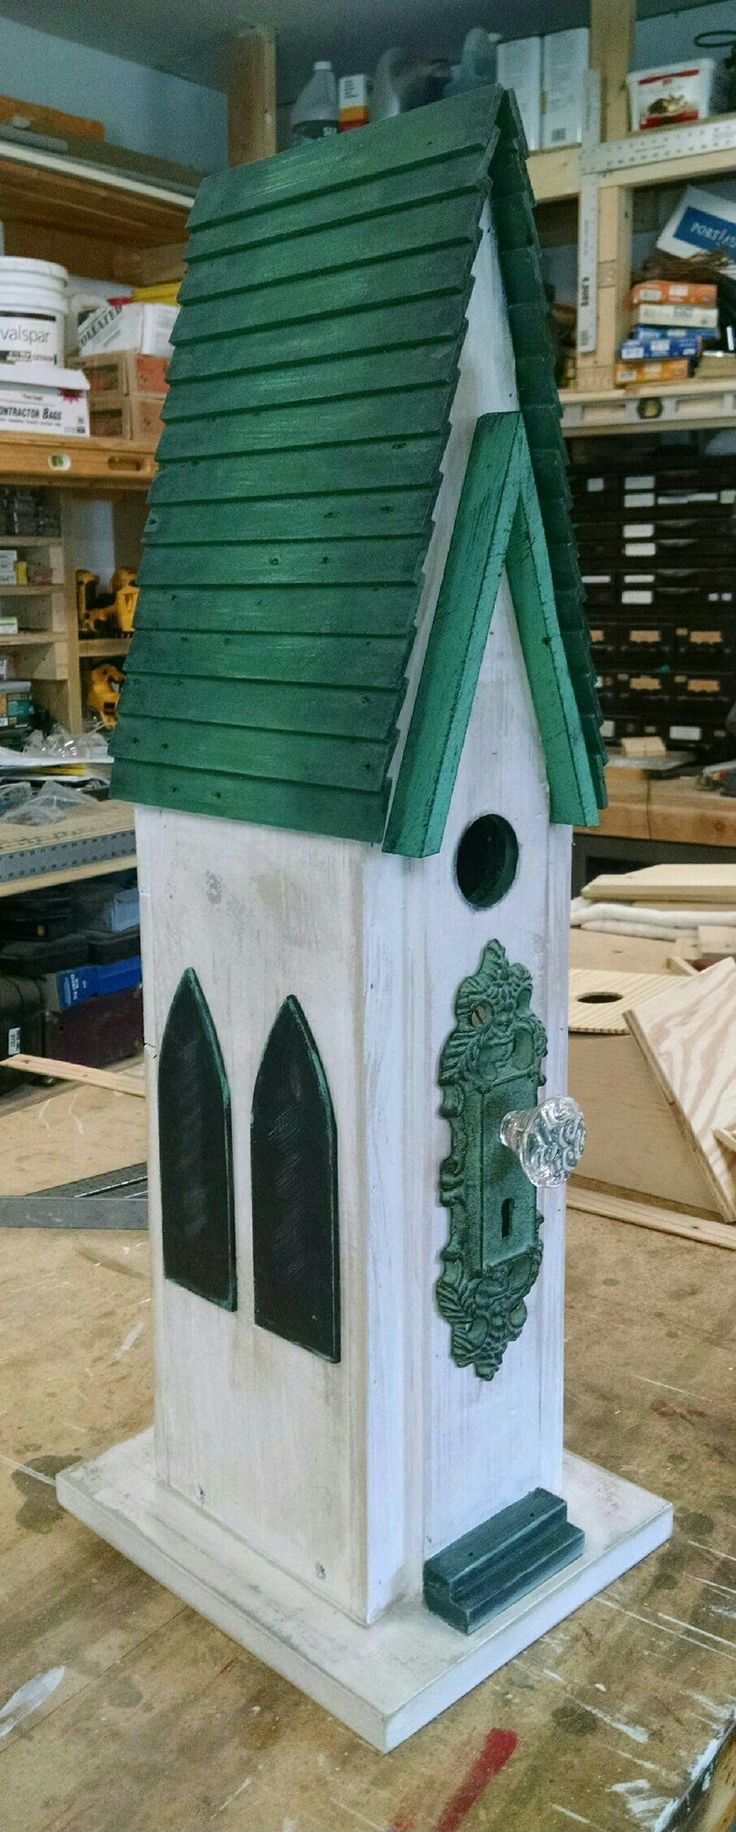 841 best Bat, Bee, Bird & erfly images on Pinterest | Bird ... Bee Houses Designs on signs designs, beehive plans and designs, box house designs, luxury pool house designs, food designs, cat house designs, bird designs,